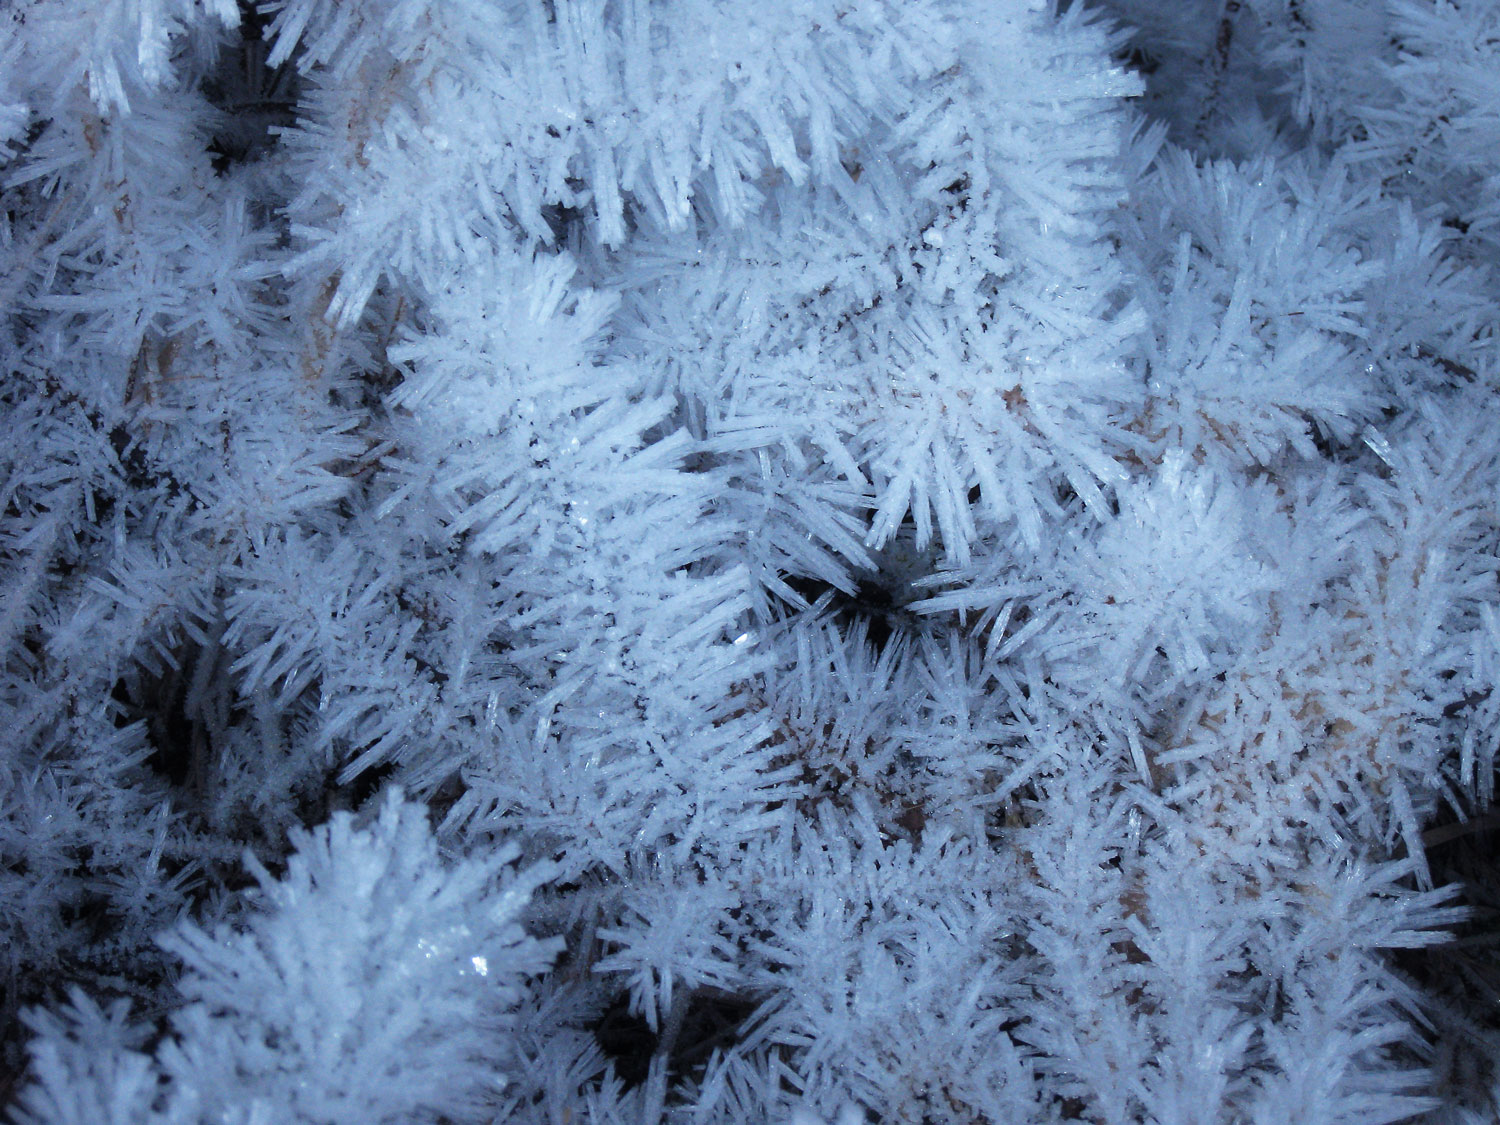 Grass covered with frost spicules.